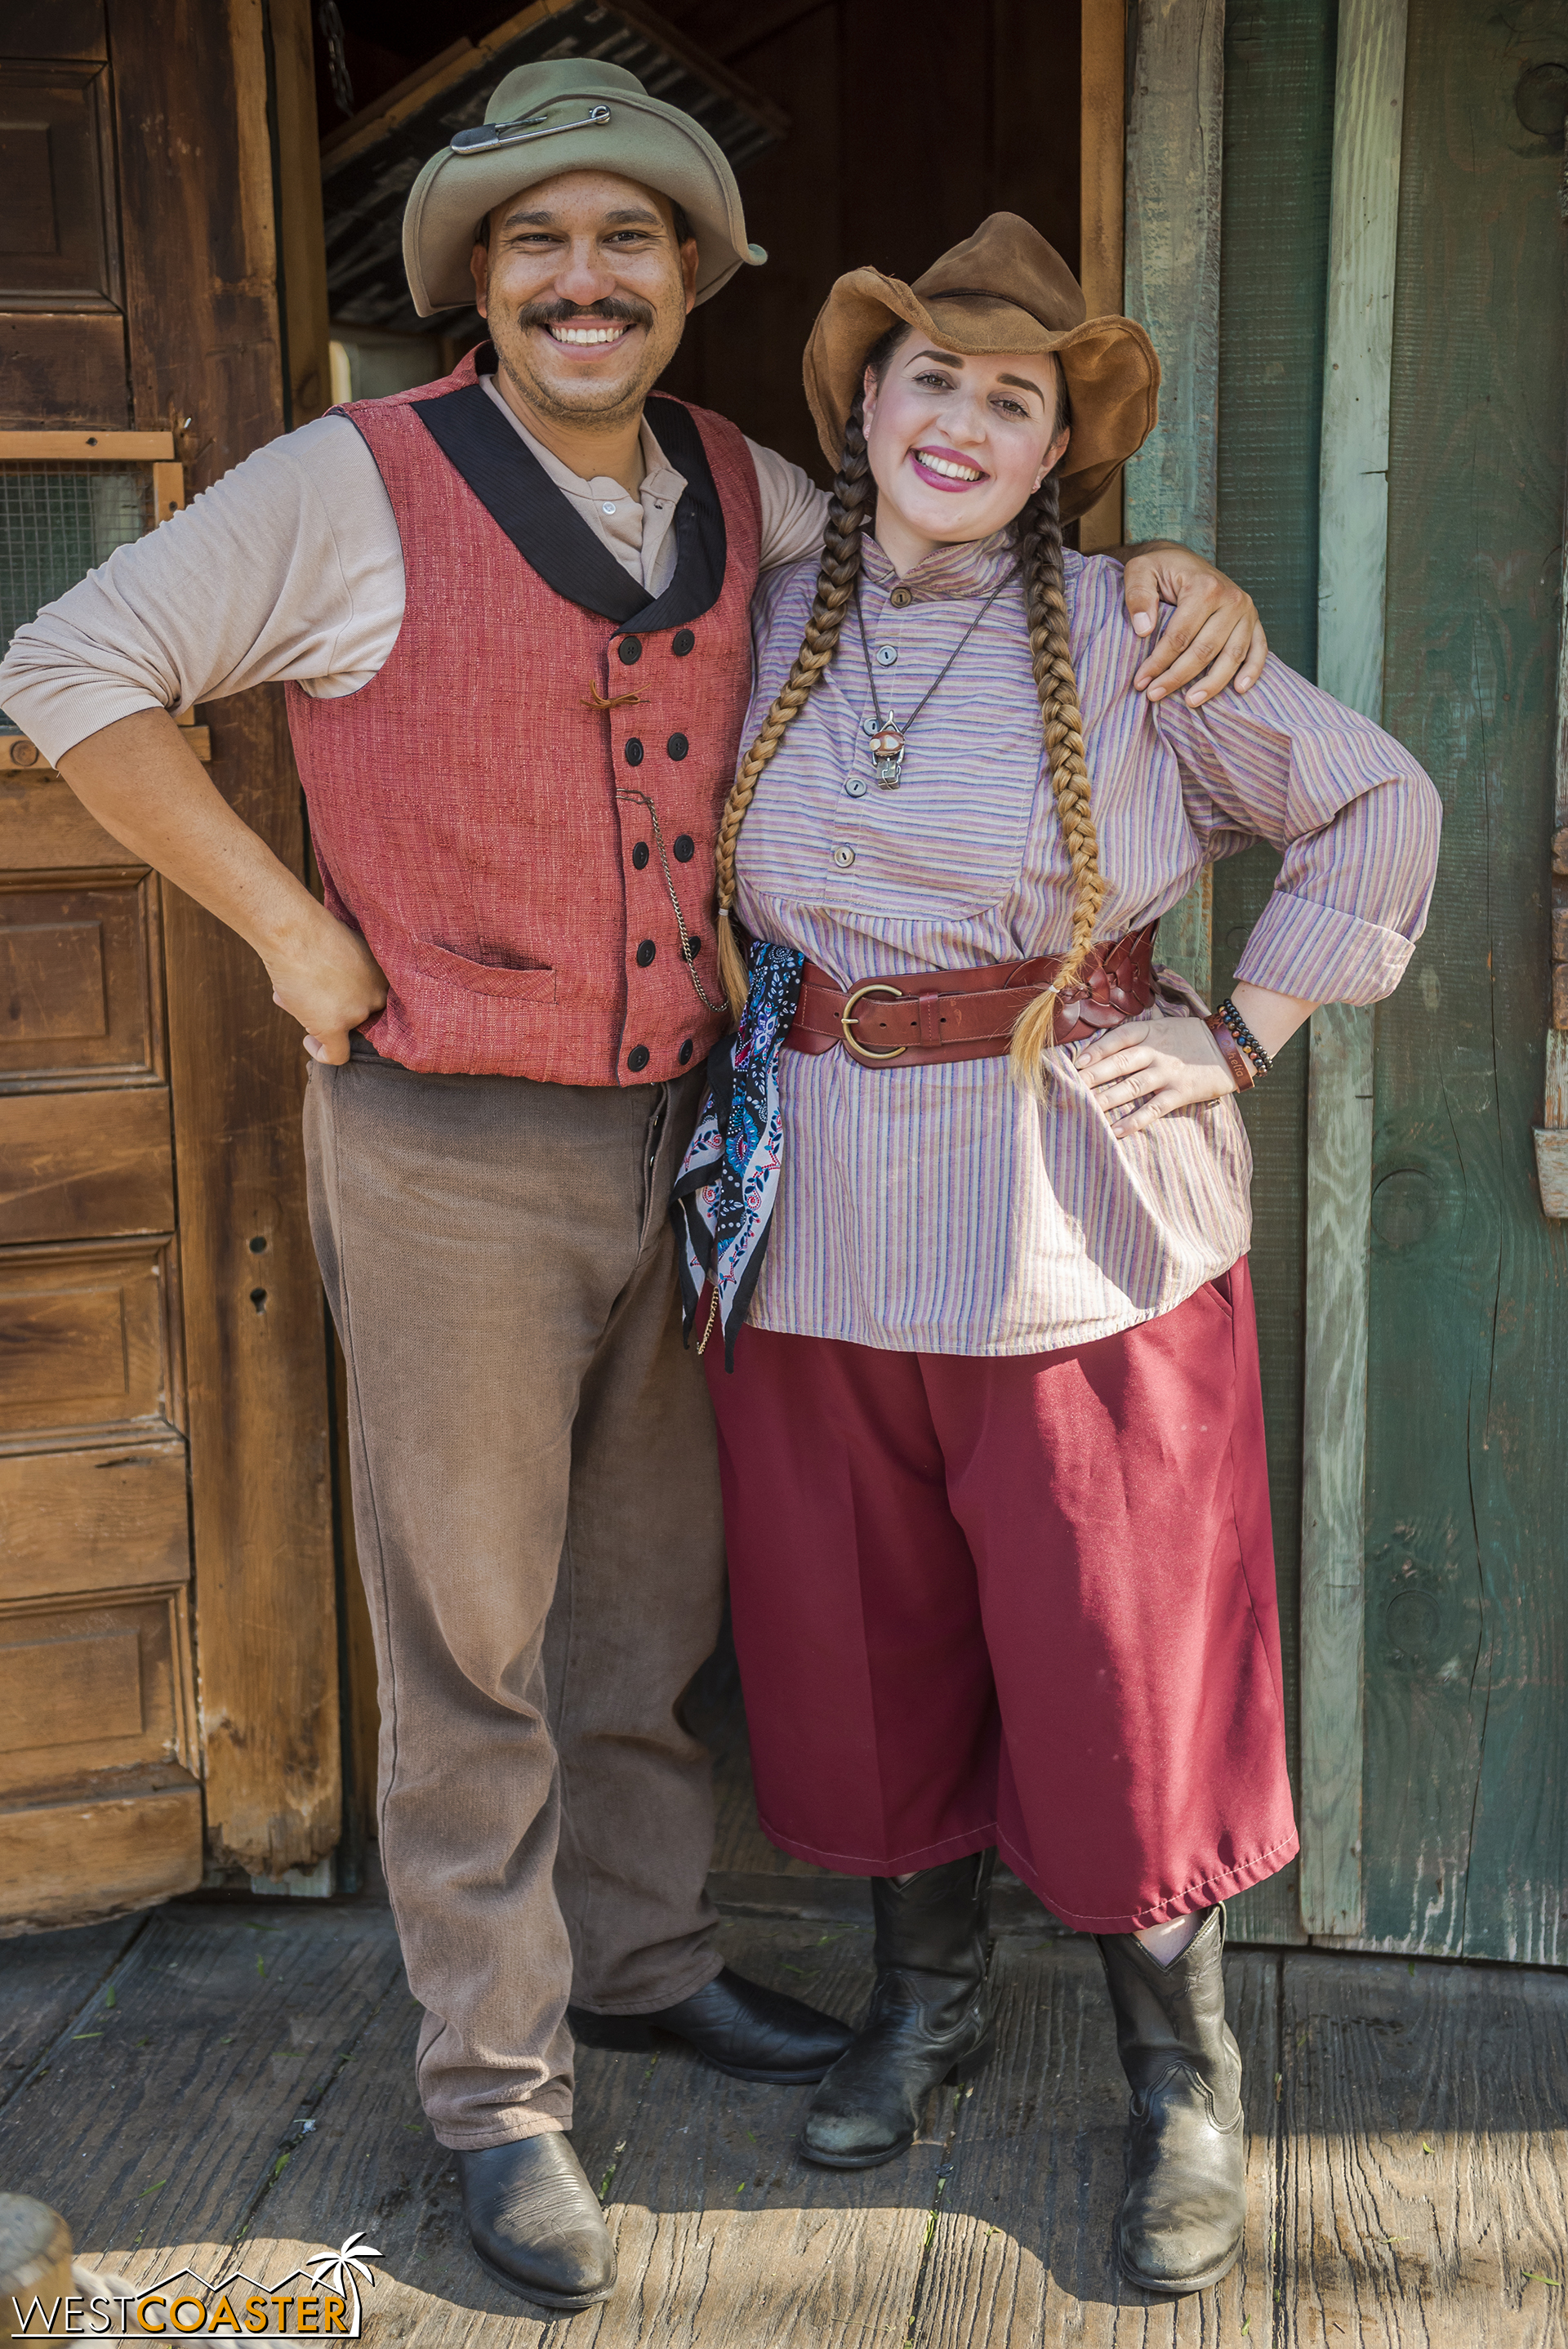 """Her father, """"Peg Leg"""" Cinch, has made it a point to be more involved in his daughter's life ever since he came back to Calico after striking it rich with the largest gold nugget in these parts."""